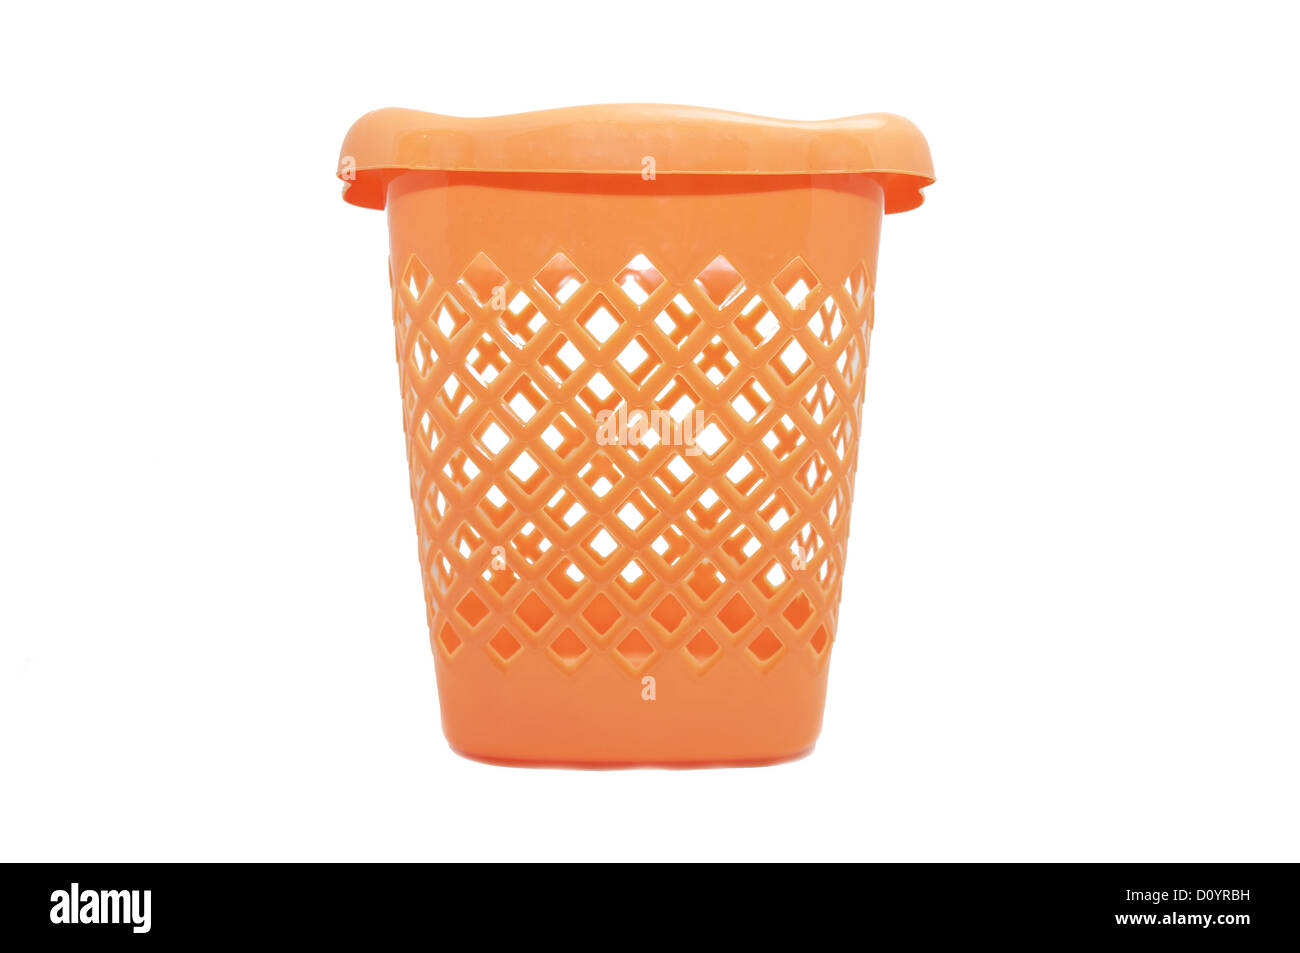 Plastic trash can - Stock Image